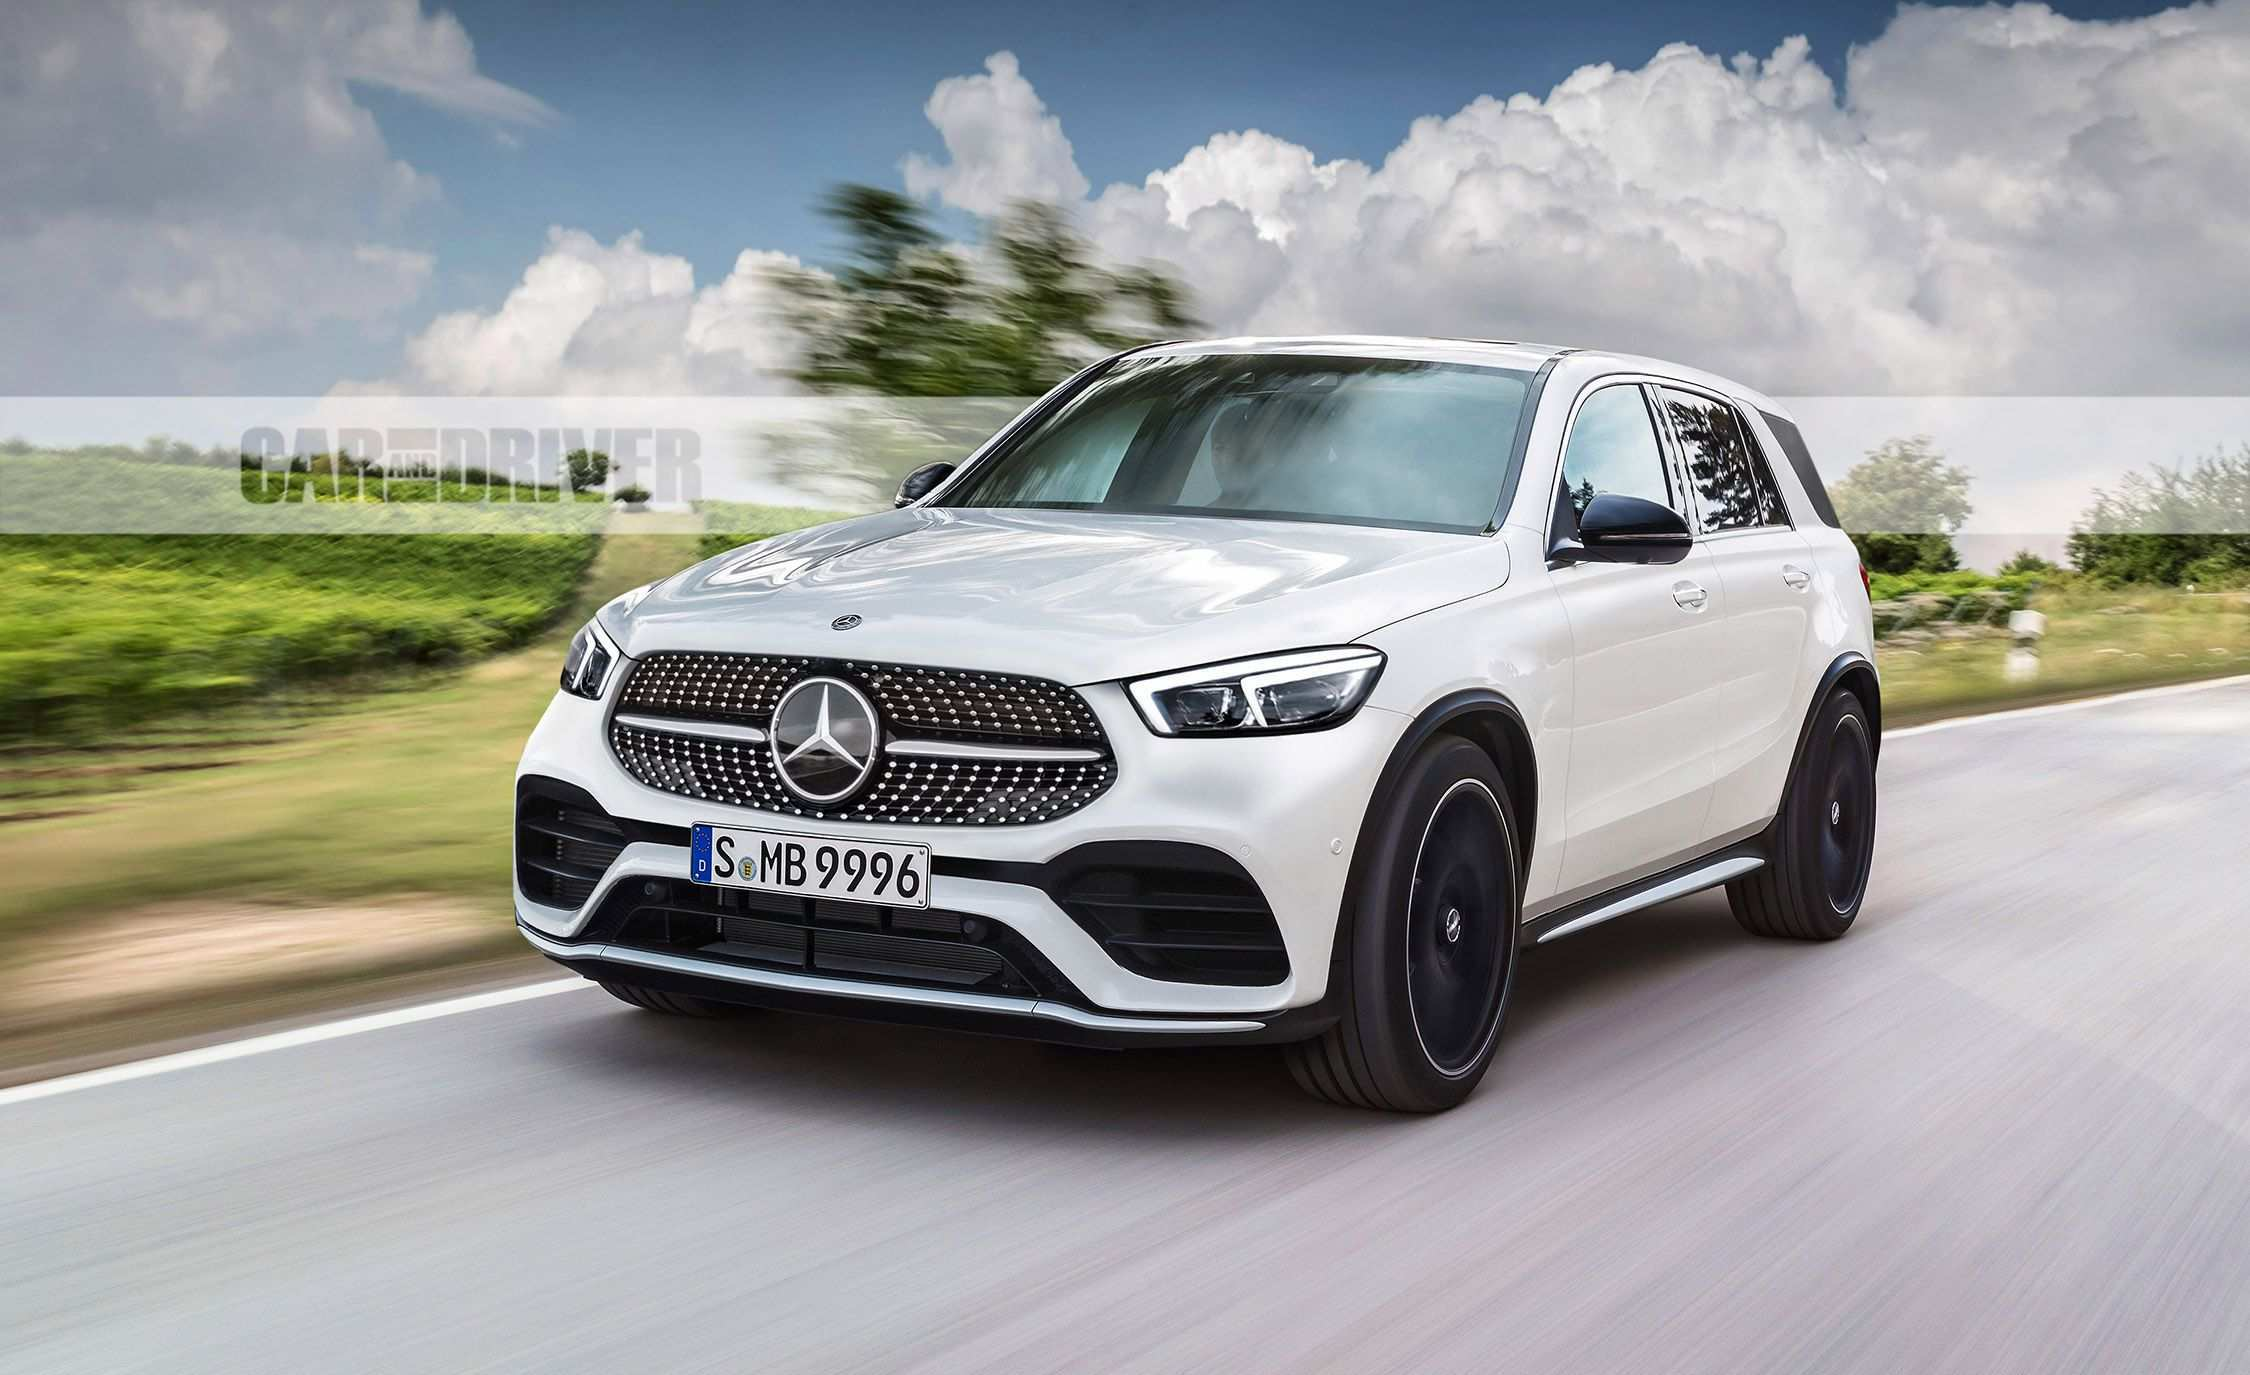 66 All New Ml Mercedes 2019 Exterior And Interior